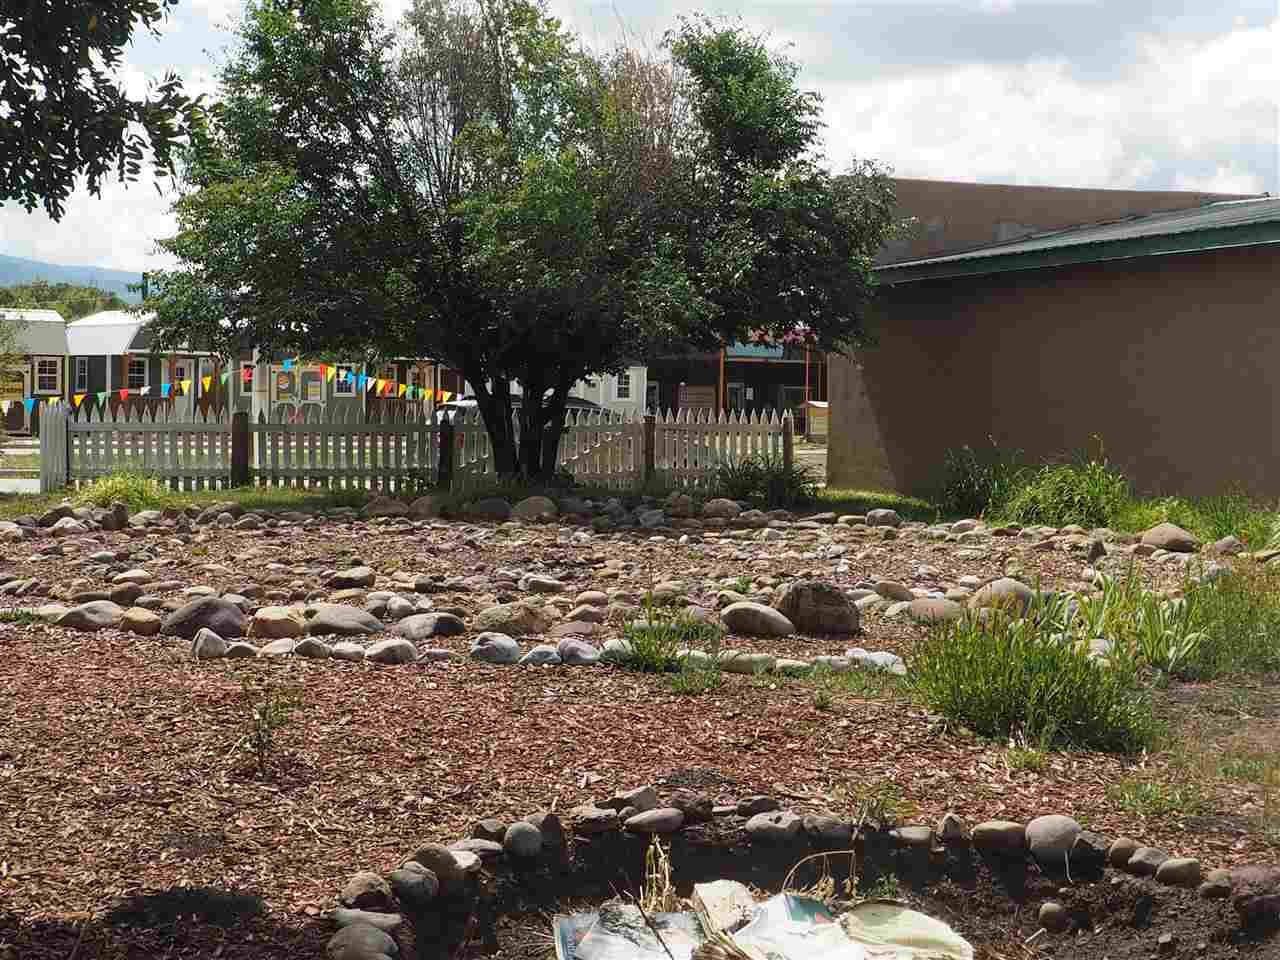 631 S Terrace Ave Chama, NM 87520